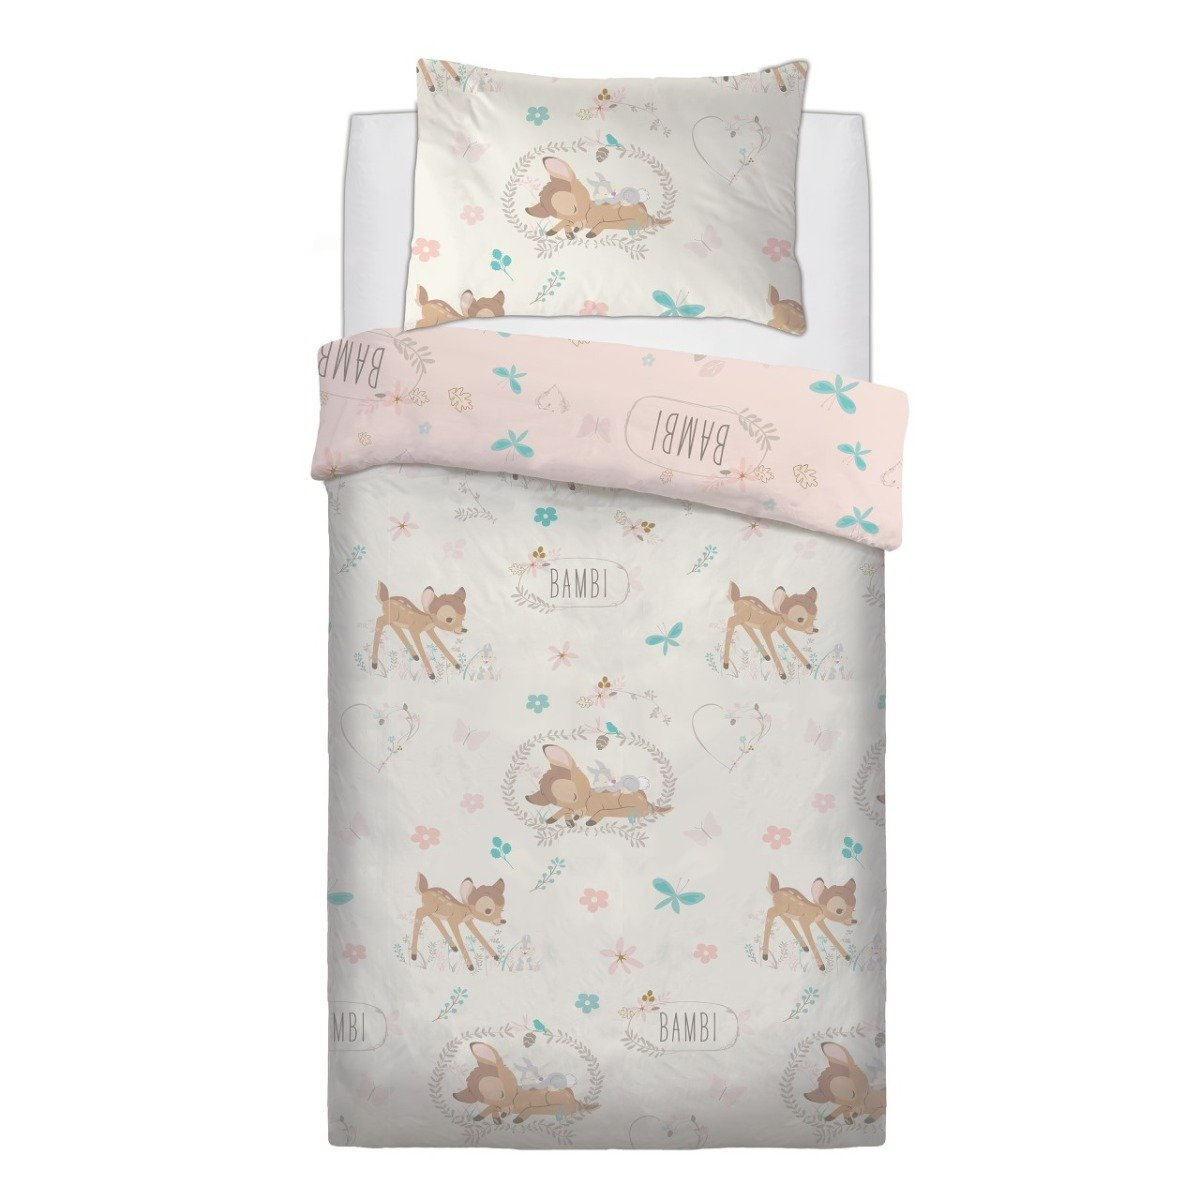 Bambi Baby Single Reversible Duvet Cover Set And Pillowcase Disney Sleepdown Official Uk Duvet Cover Sets Bedding Linen